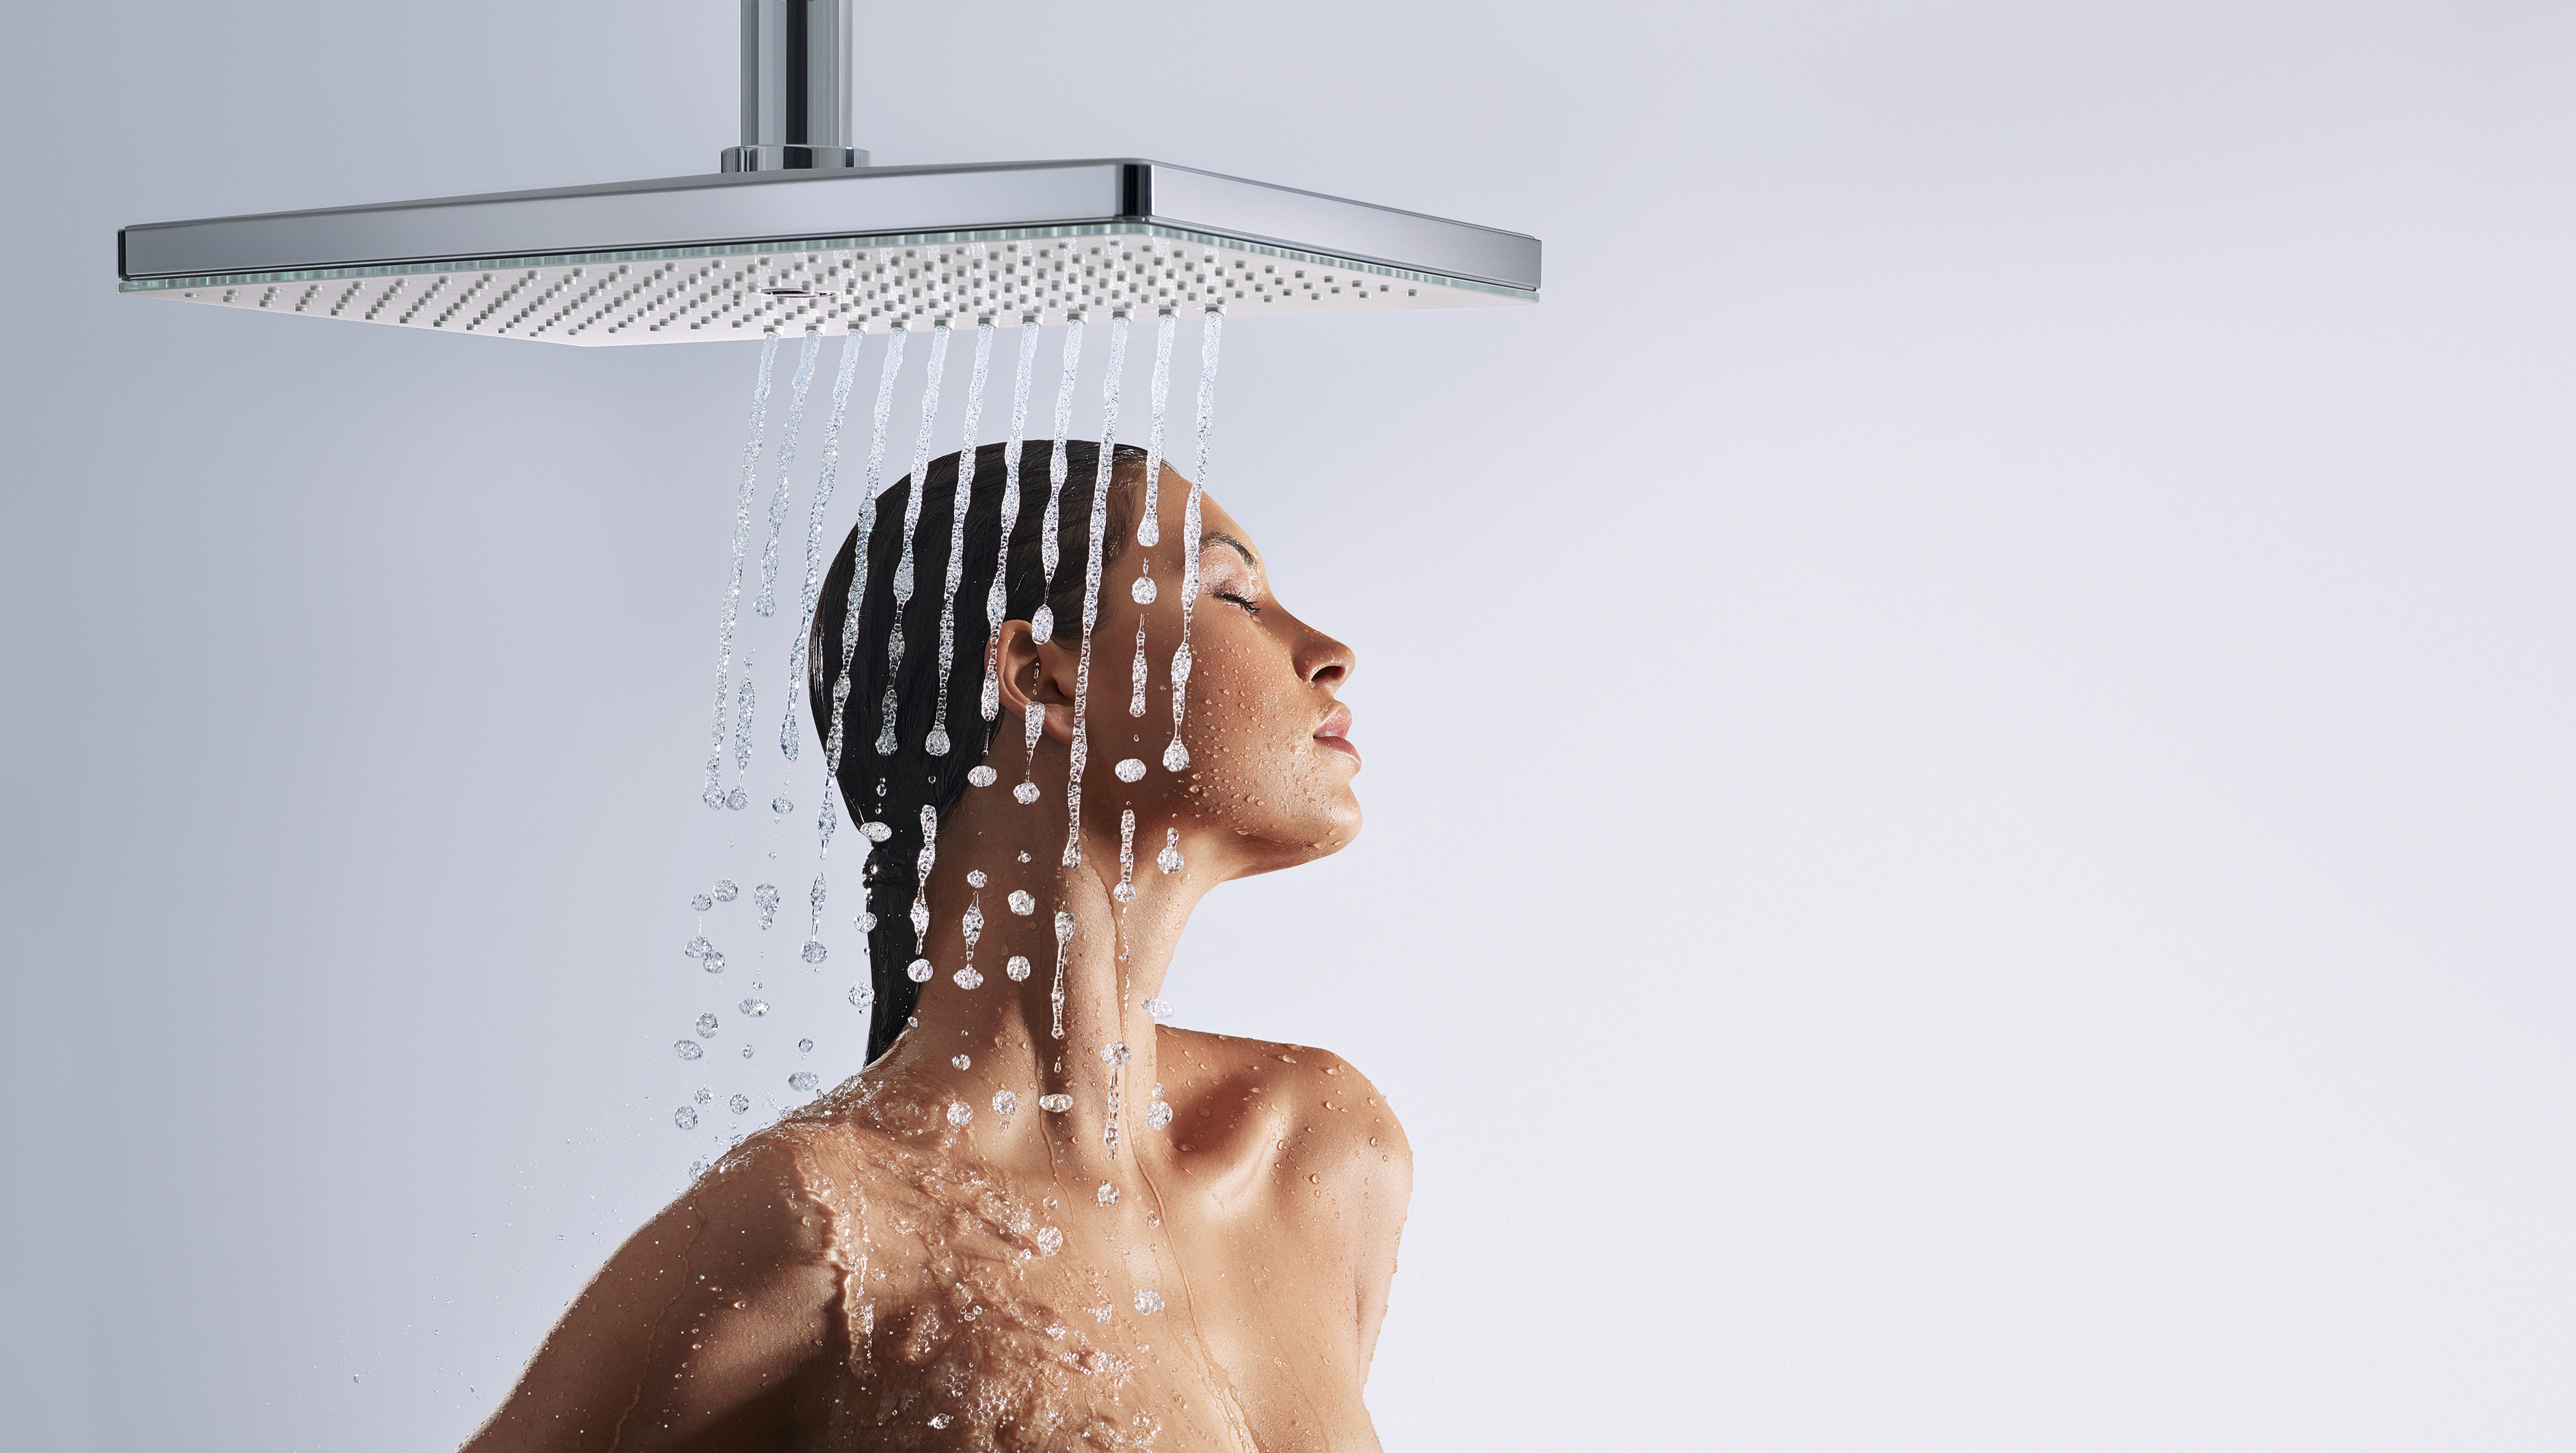 Hansgrohe_RainmakerSelect_460_overheadshower_People_Stream